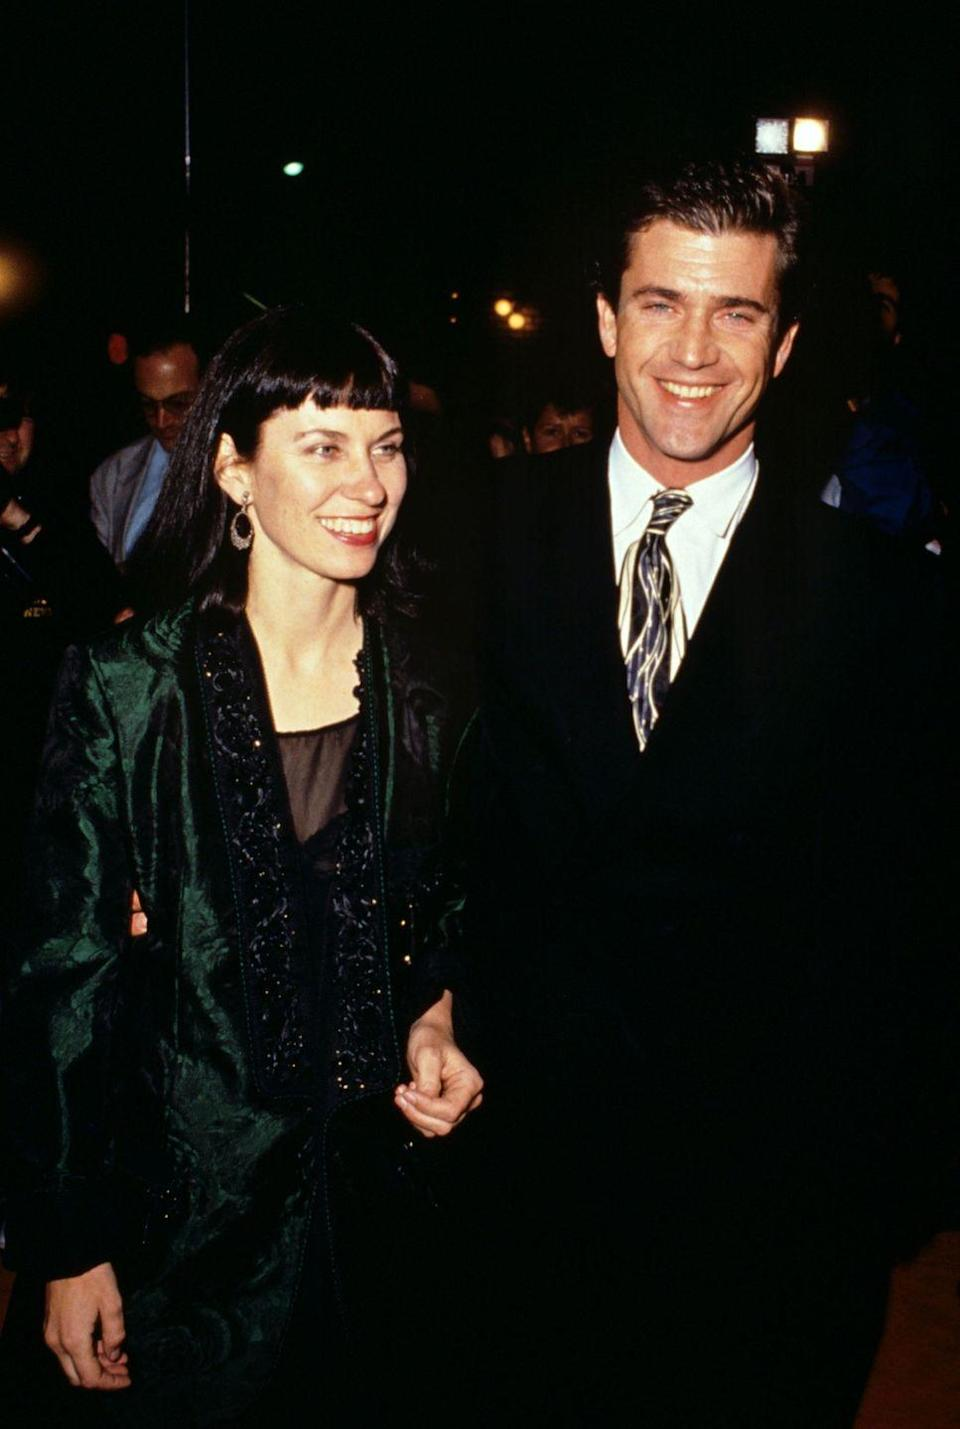 "<p>Actor Mel Gibson <a href=""http://people.com/celebrity/mel-gibsons-wife-files-for-divorce/"" rel=""nofollow noopener"" target=""_blank"" data-ylk=""slk:met Robyn Moore"" class=""link rapid-noclick-resp"">met Robyn Moore</a> when Moore was a dental nurse in the 1970s. They were married on June 7, 1980 in a Catholic ceremony in Australia. They pair went on to have seven children together but Moore filed for divorce on April 13, 2009, shortly after Gibson was arrested for drunk driving in Malibu. </p>"